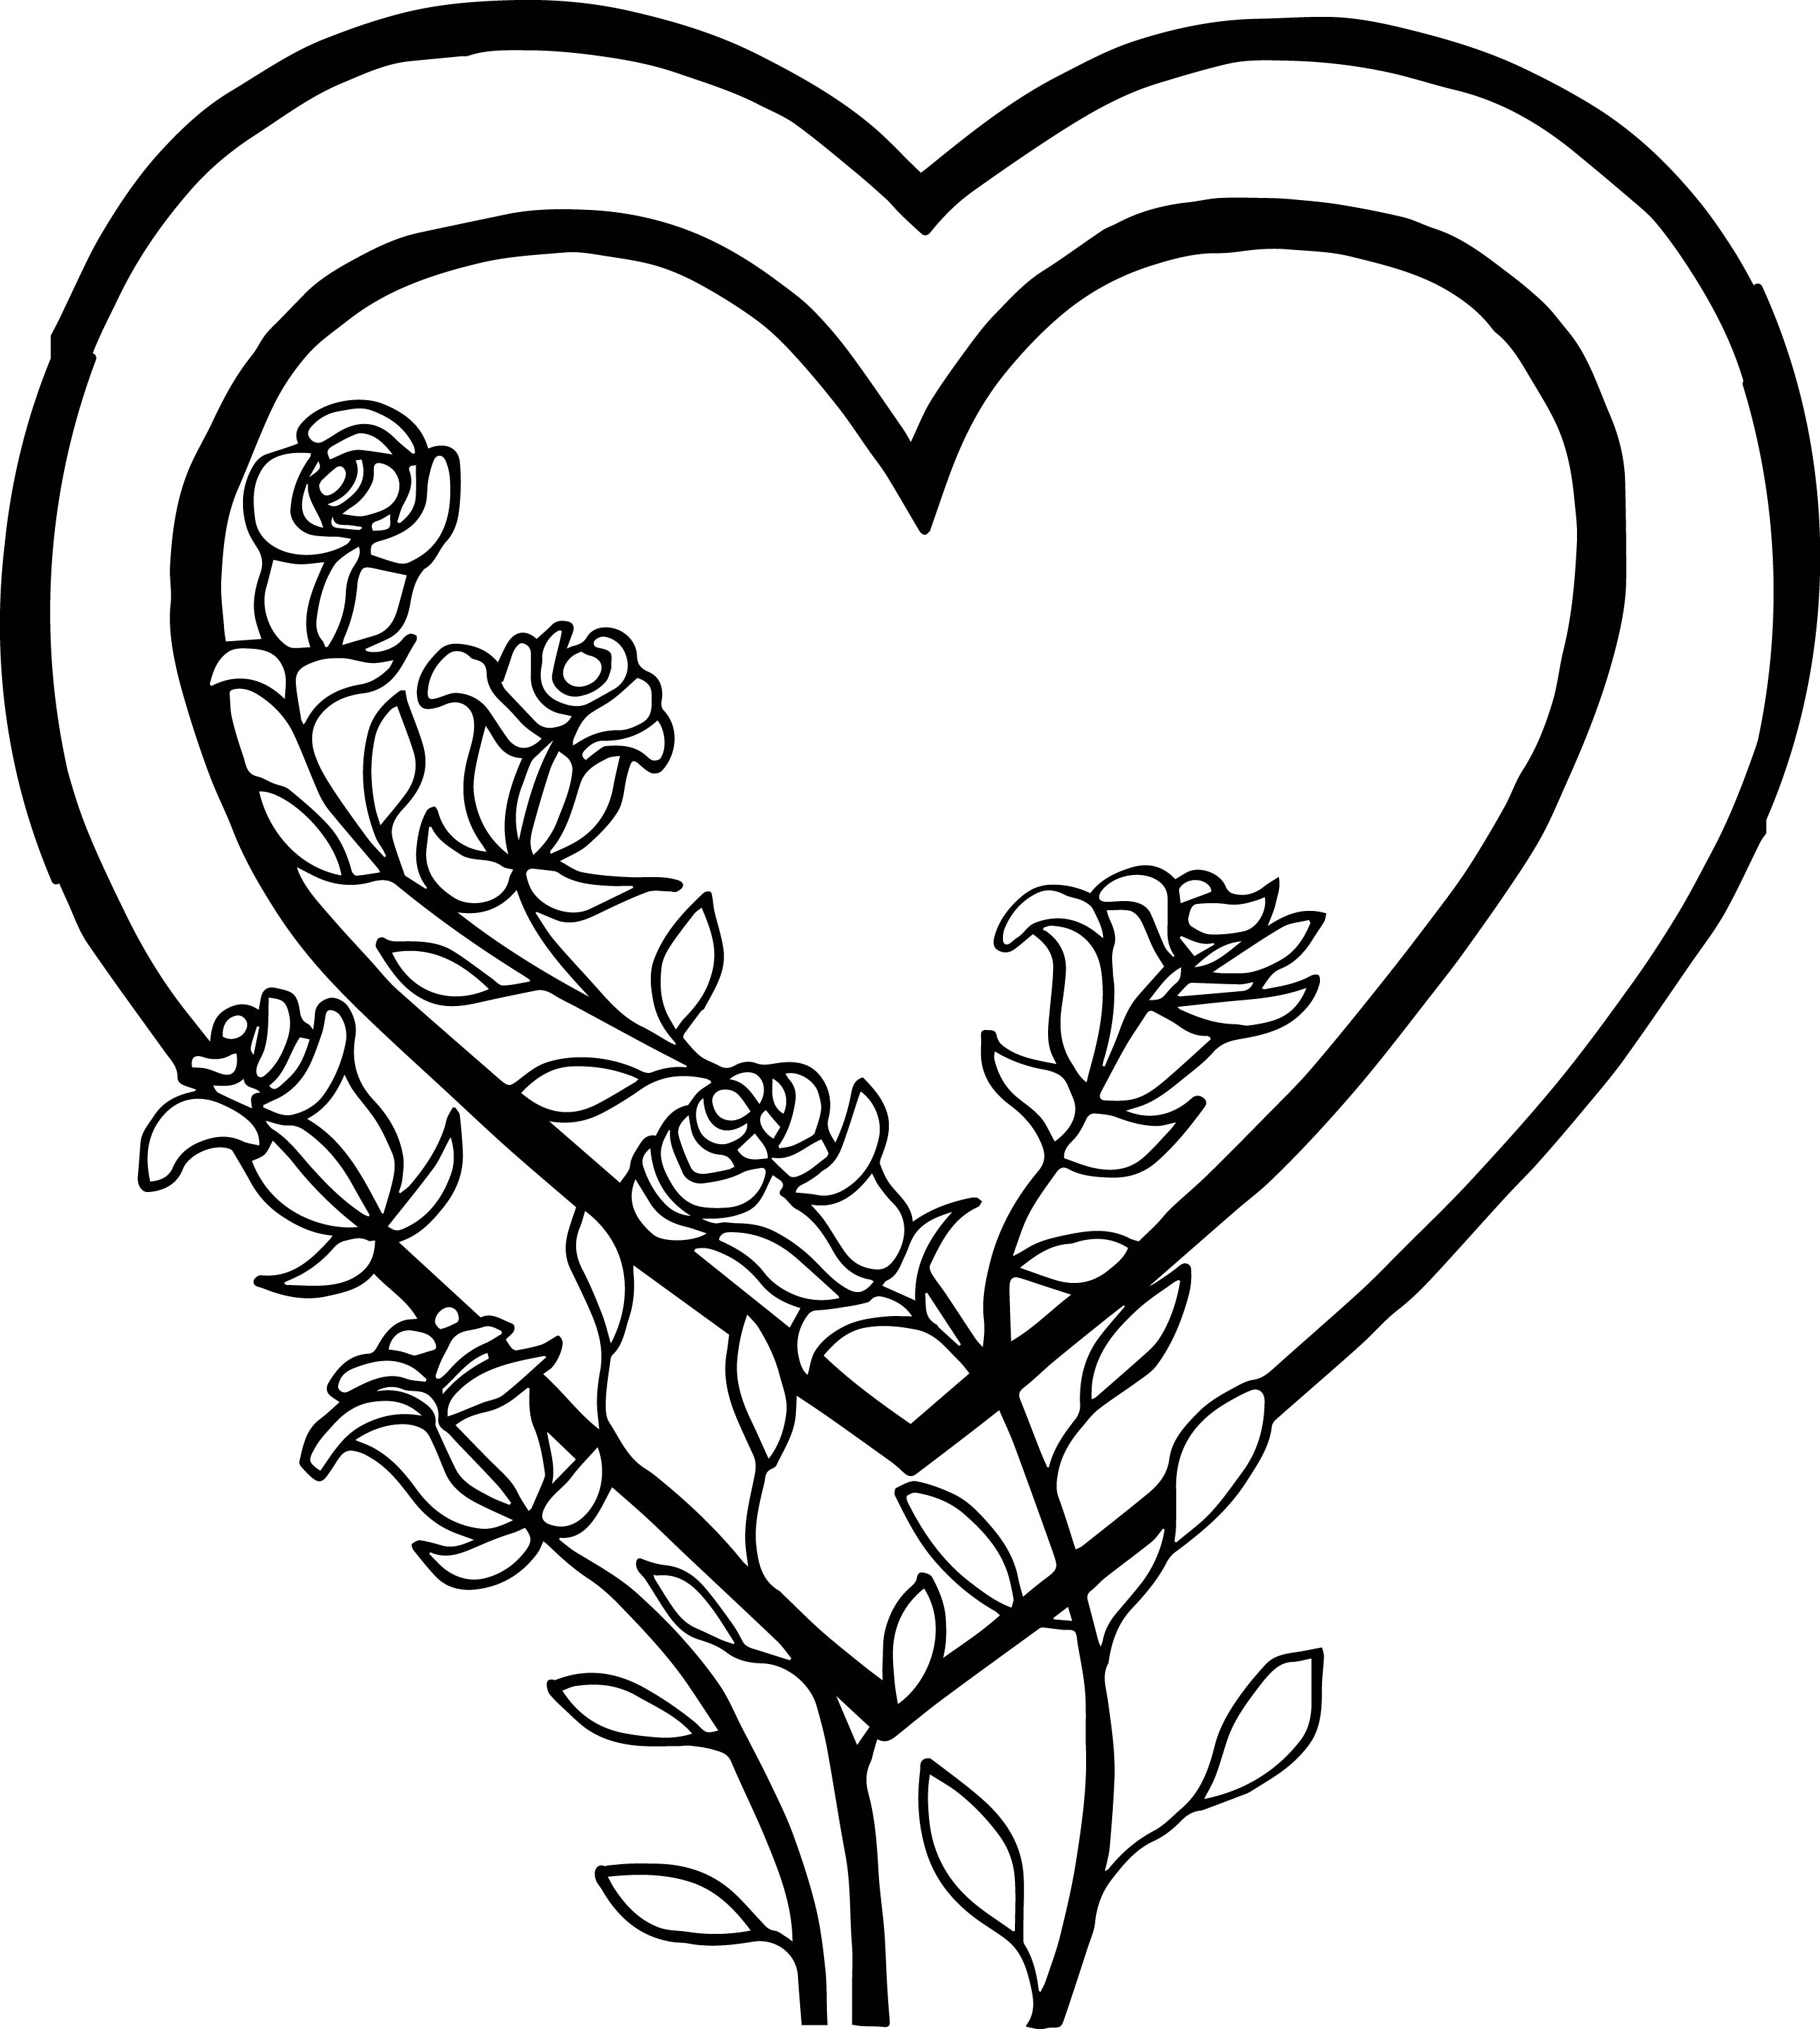 Heart And Roses Coloring Page